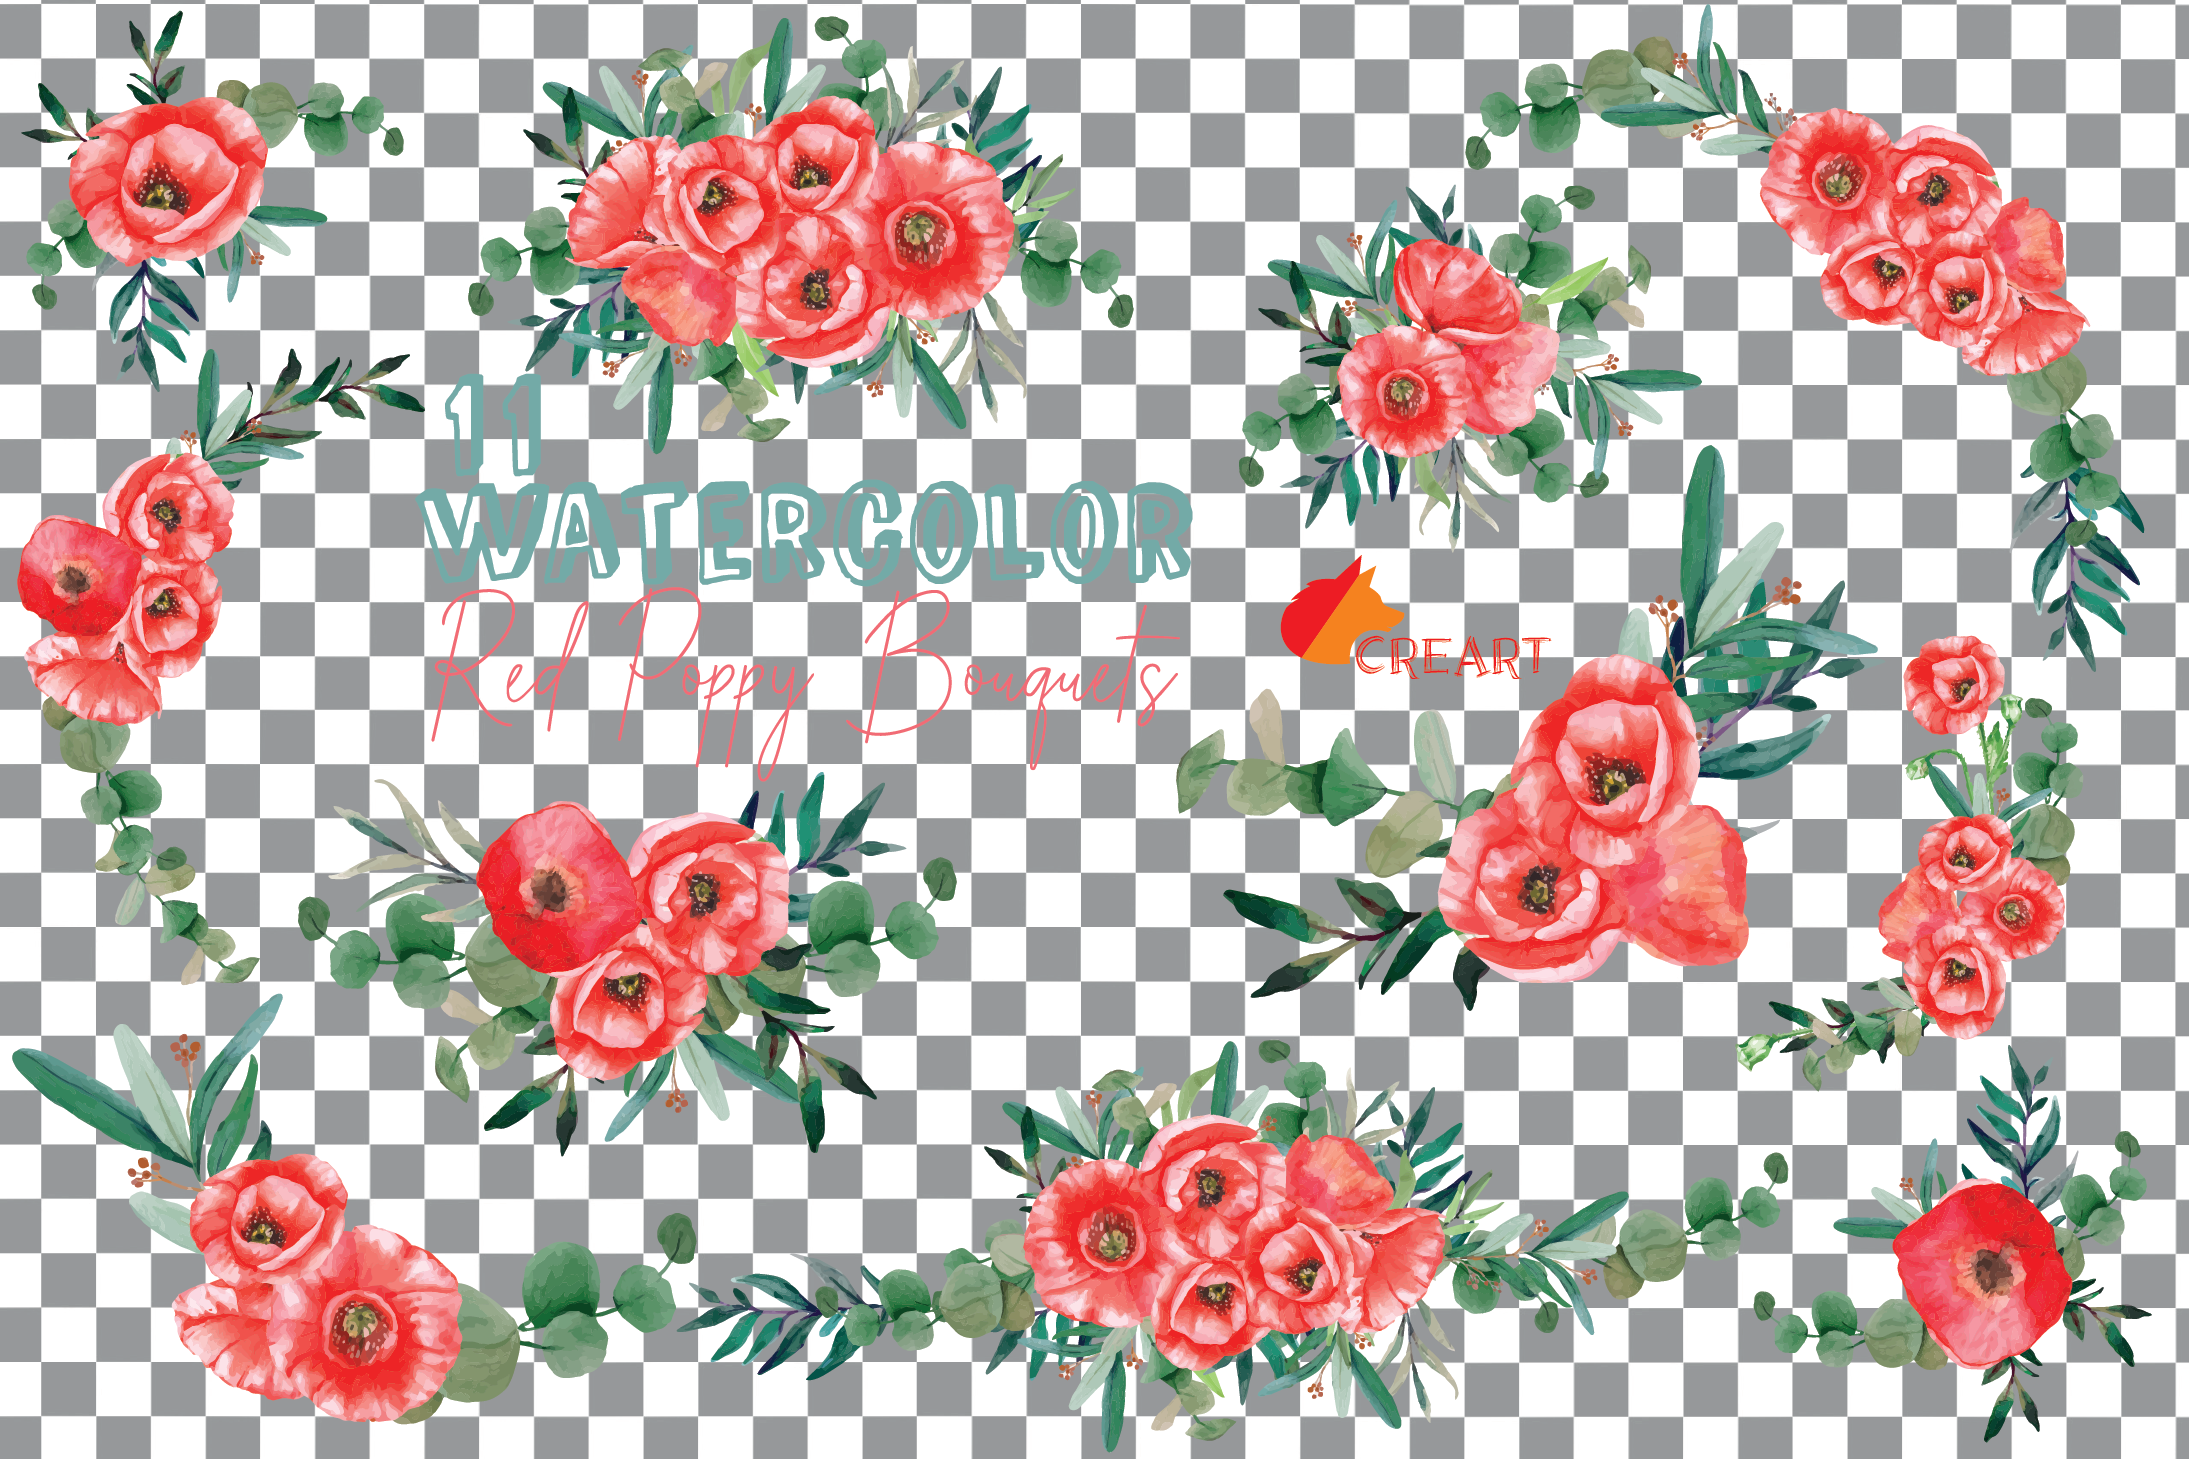 Red poppies floral watercolor wedding bouquets, floral decor example image 13